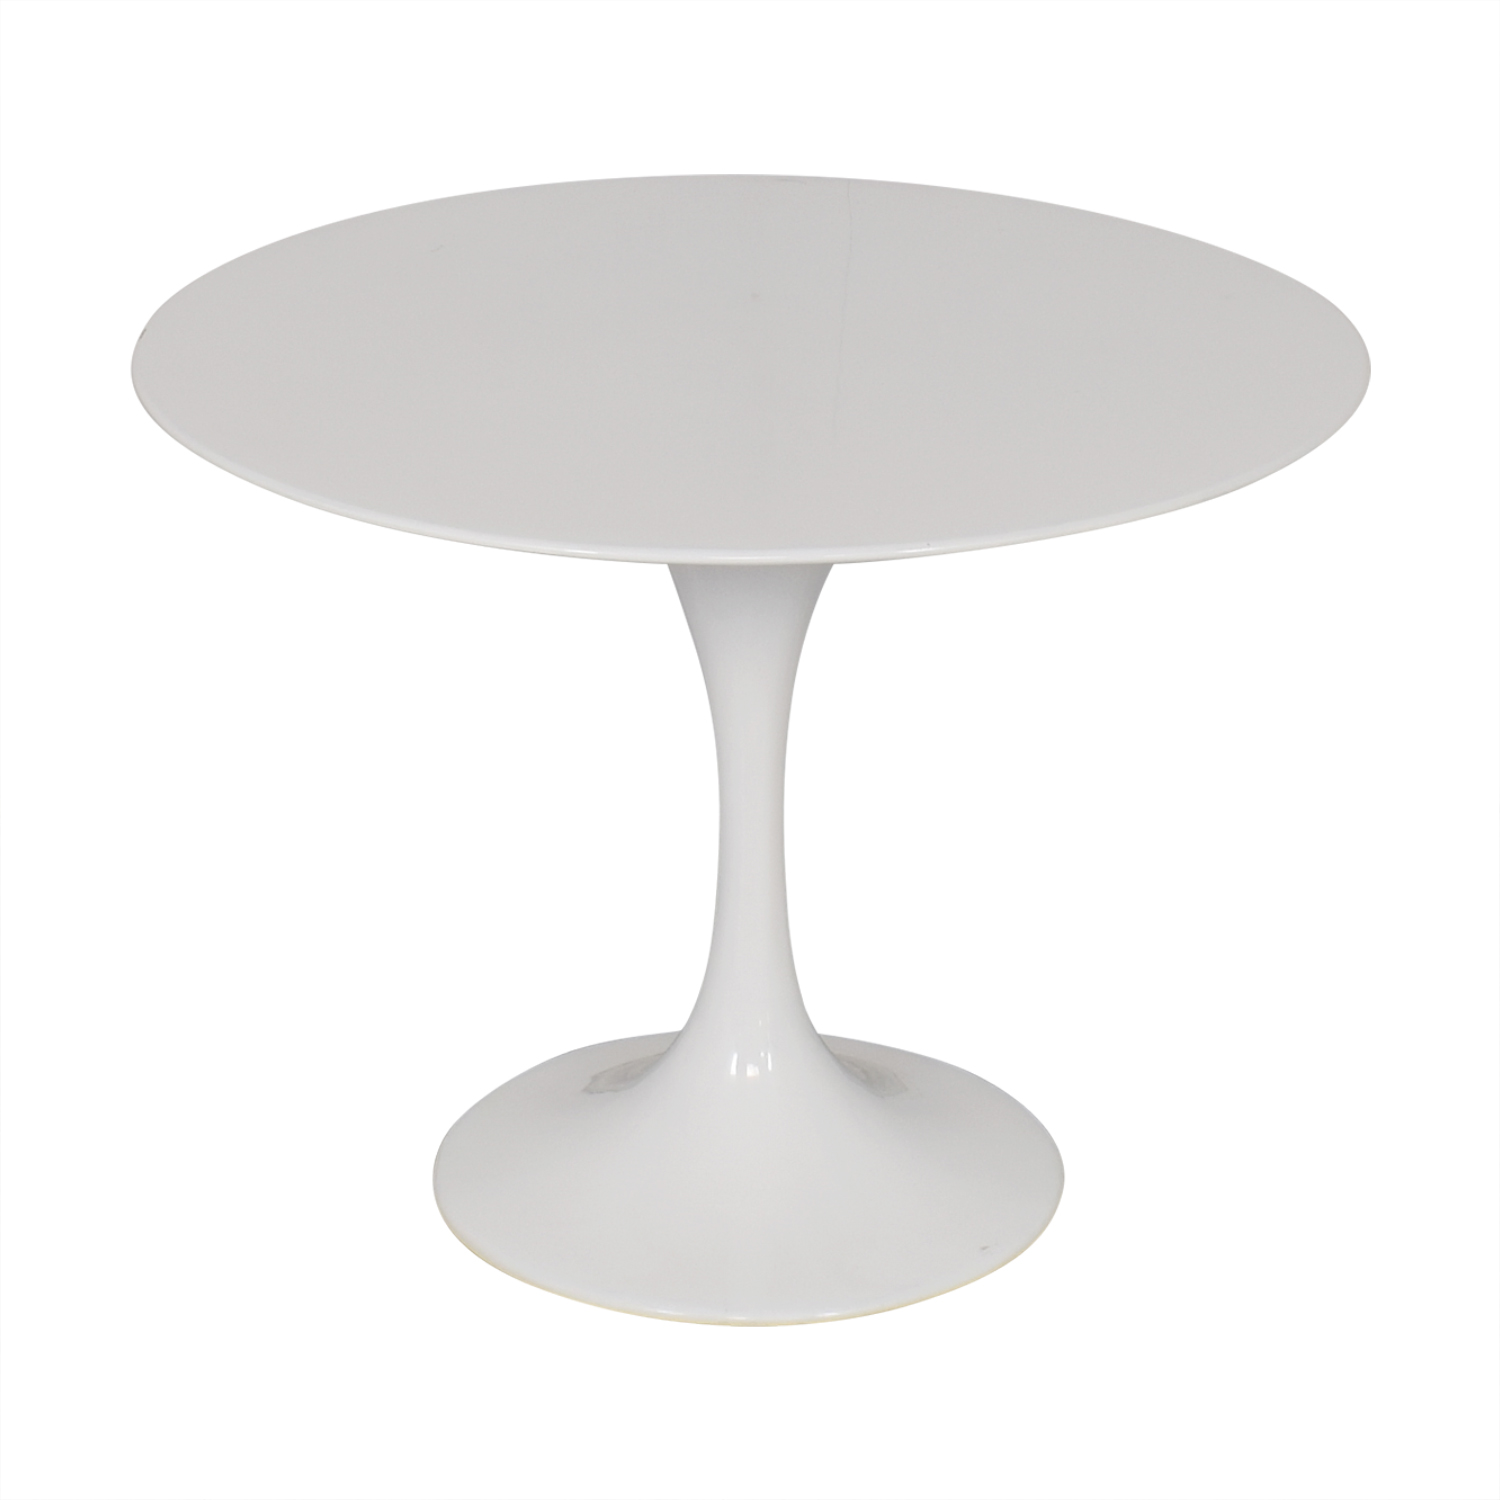 LexMod LexMod Lippa Round Dining Table coupon